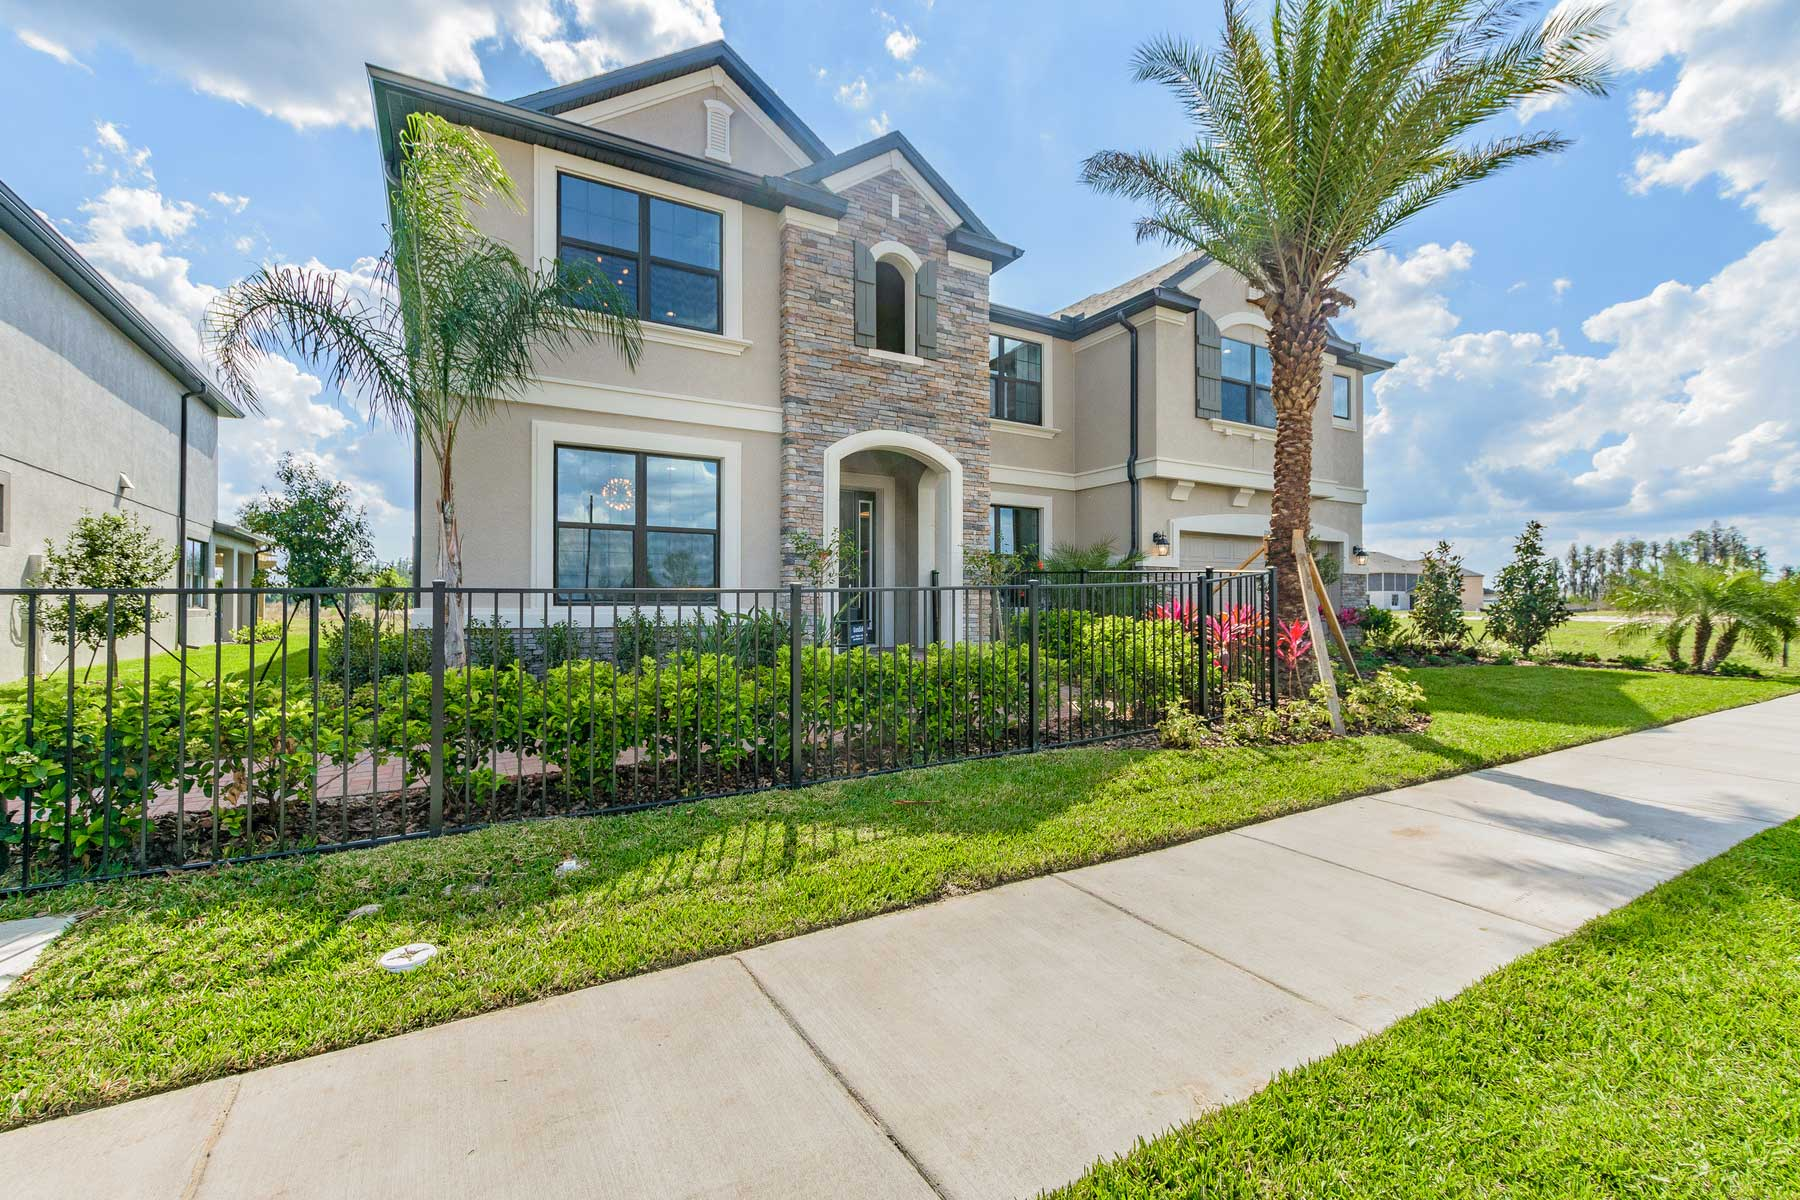 New Home In Tampa The Grandsail Iii M I Homes